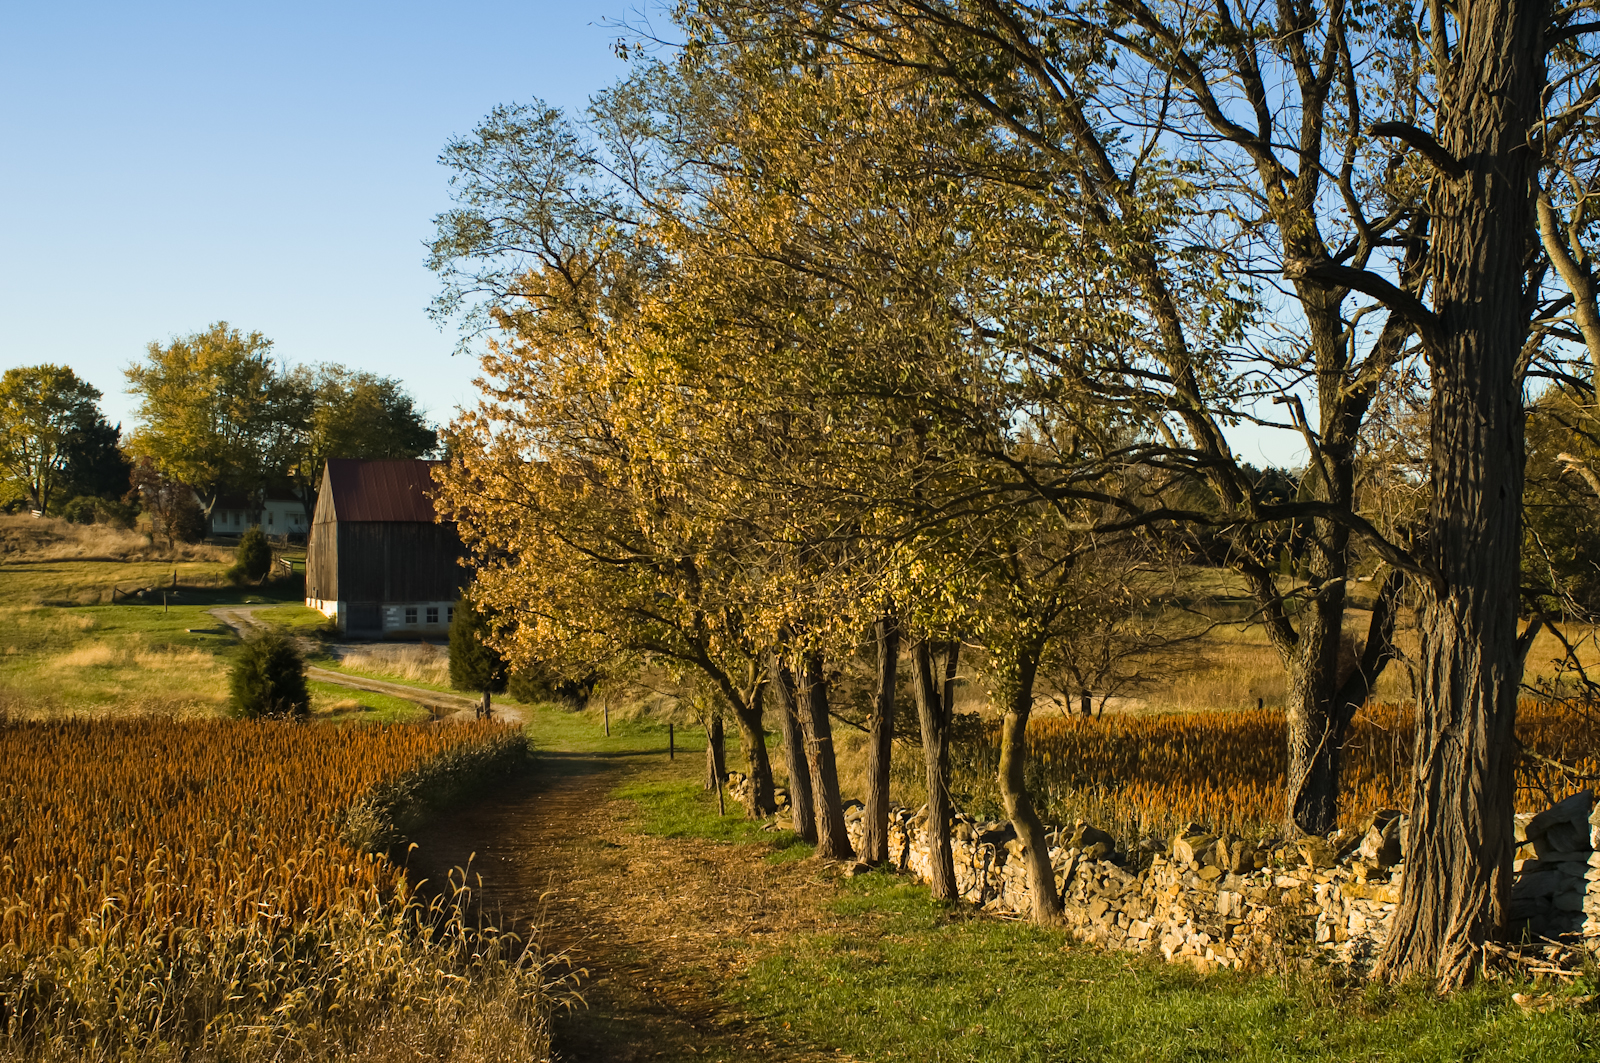 Roulette Farm, Autumn, Antietam National Battlefield Park, Sharp